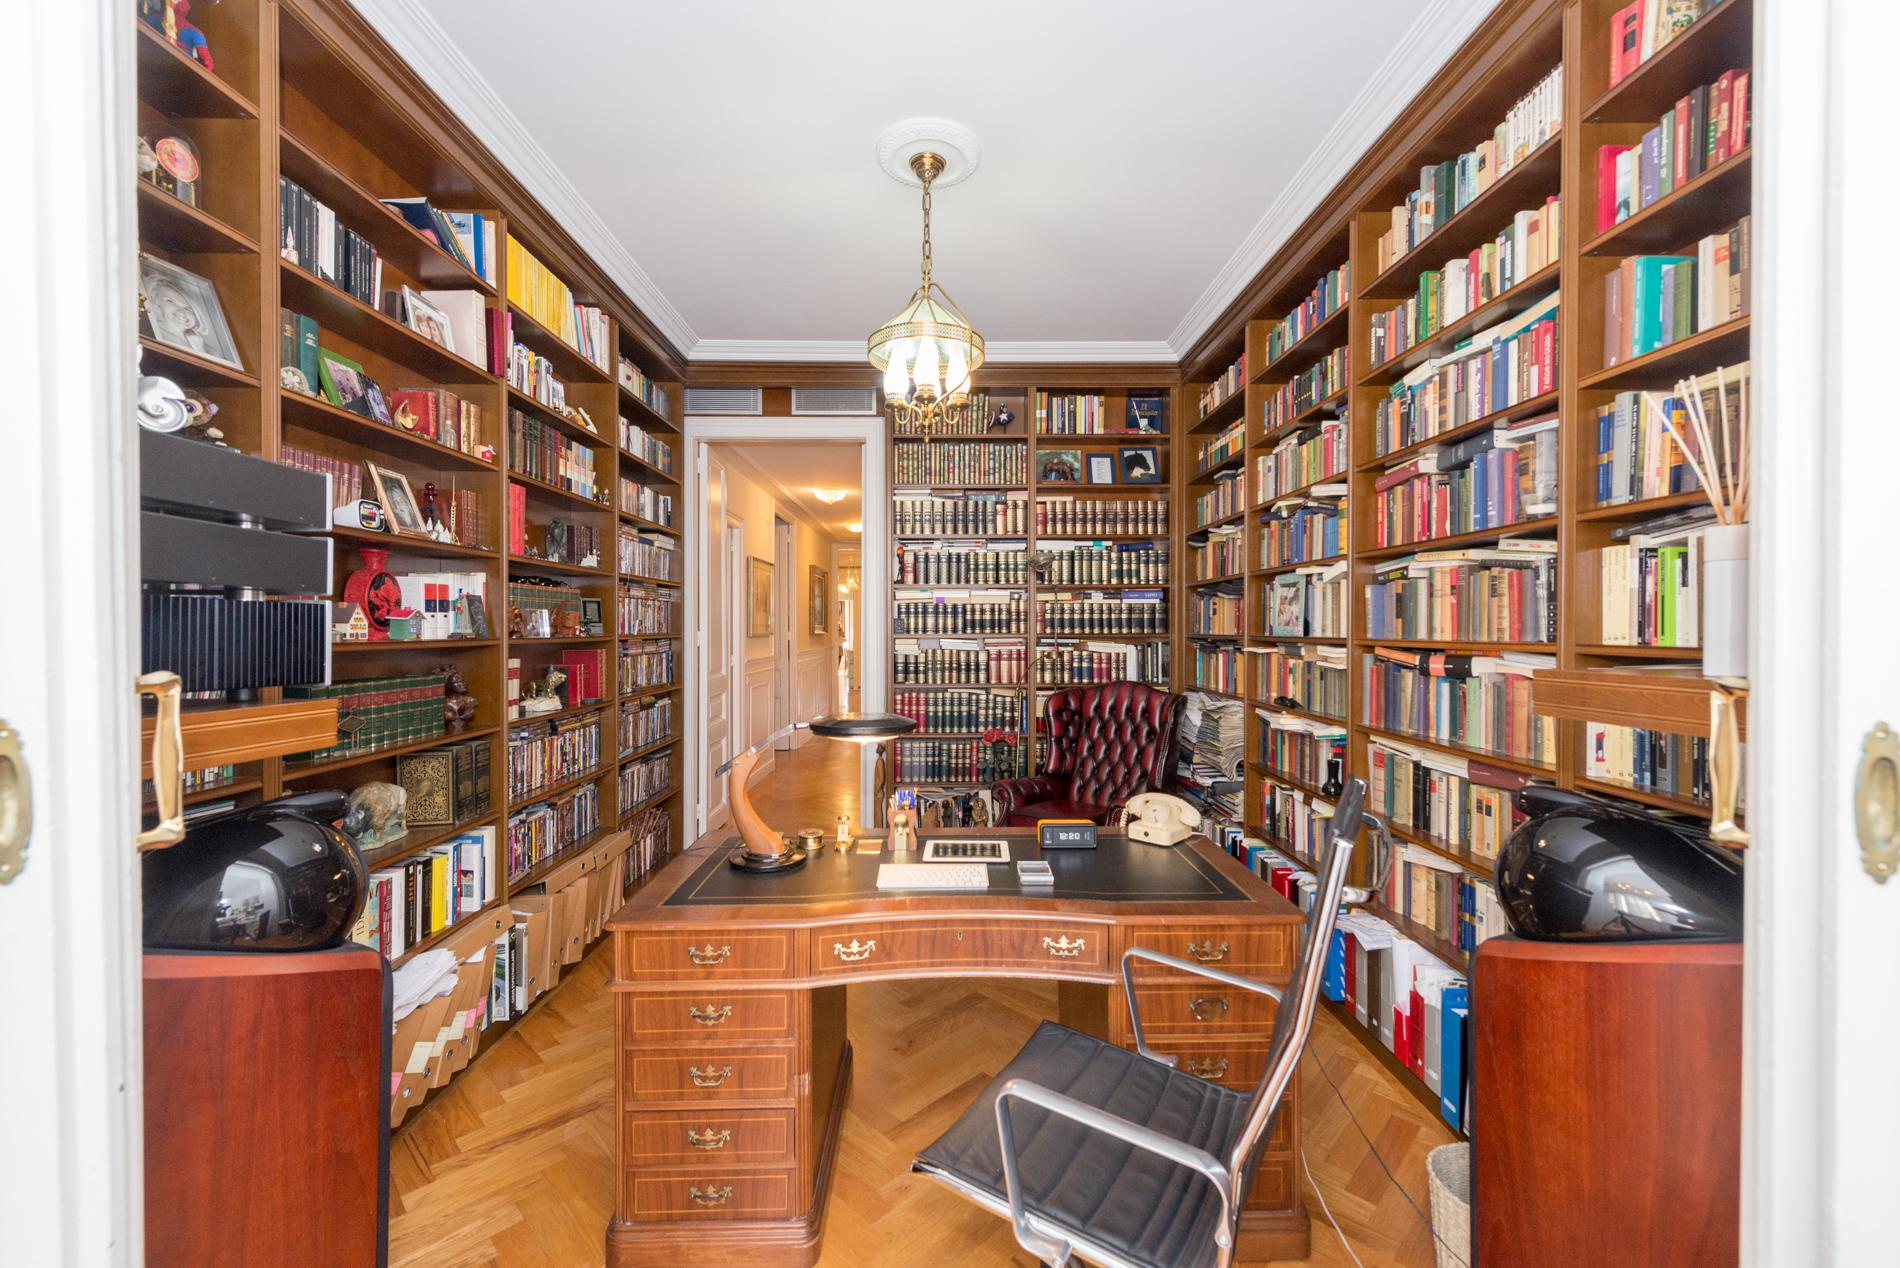 174066 Apartment for sale in Eixample, Old Left Eixample 10